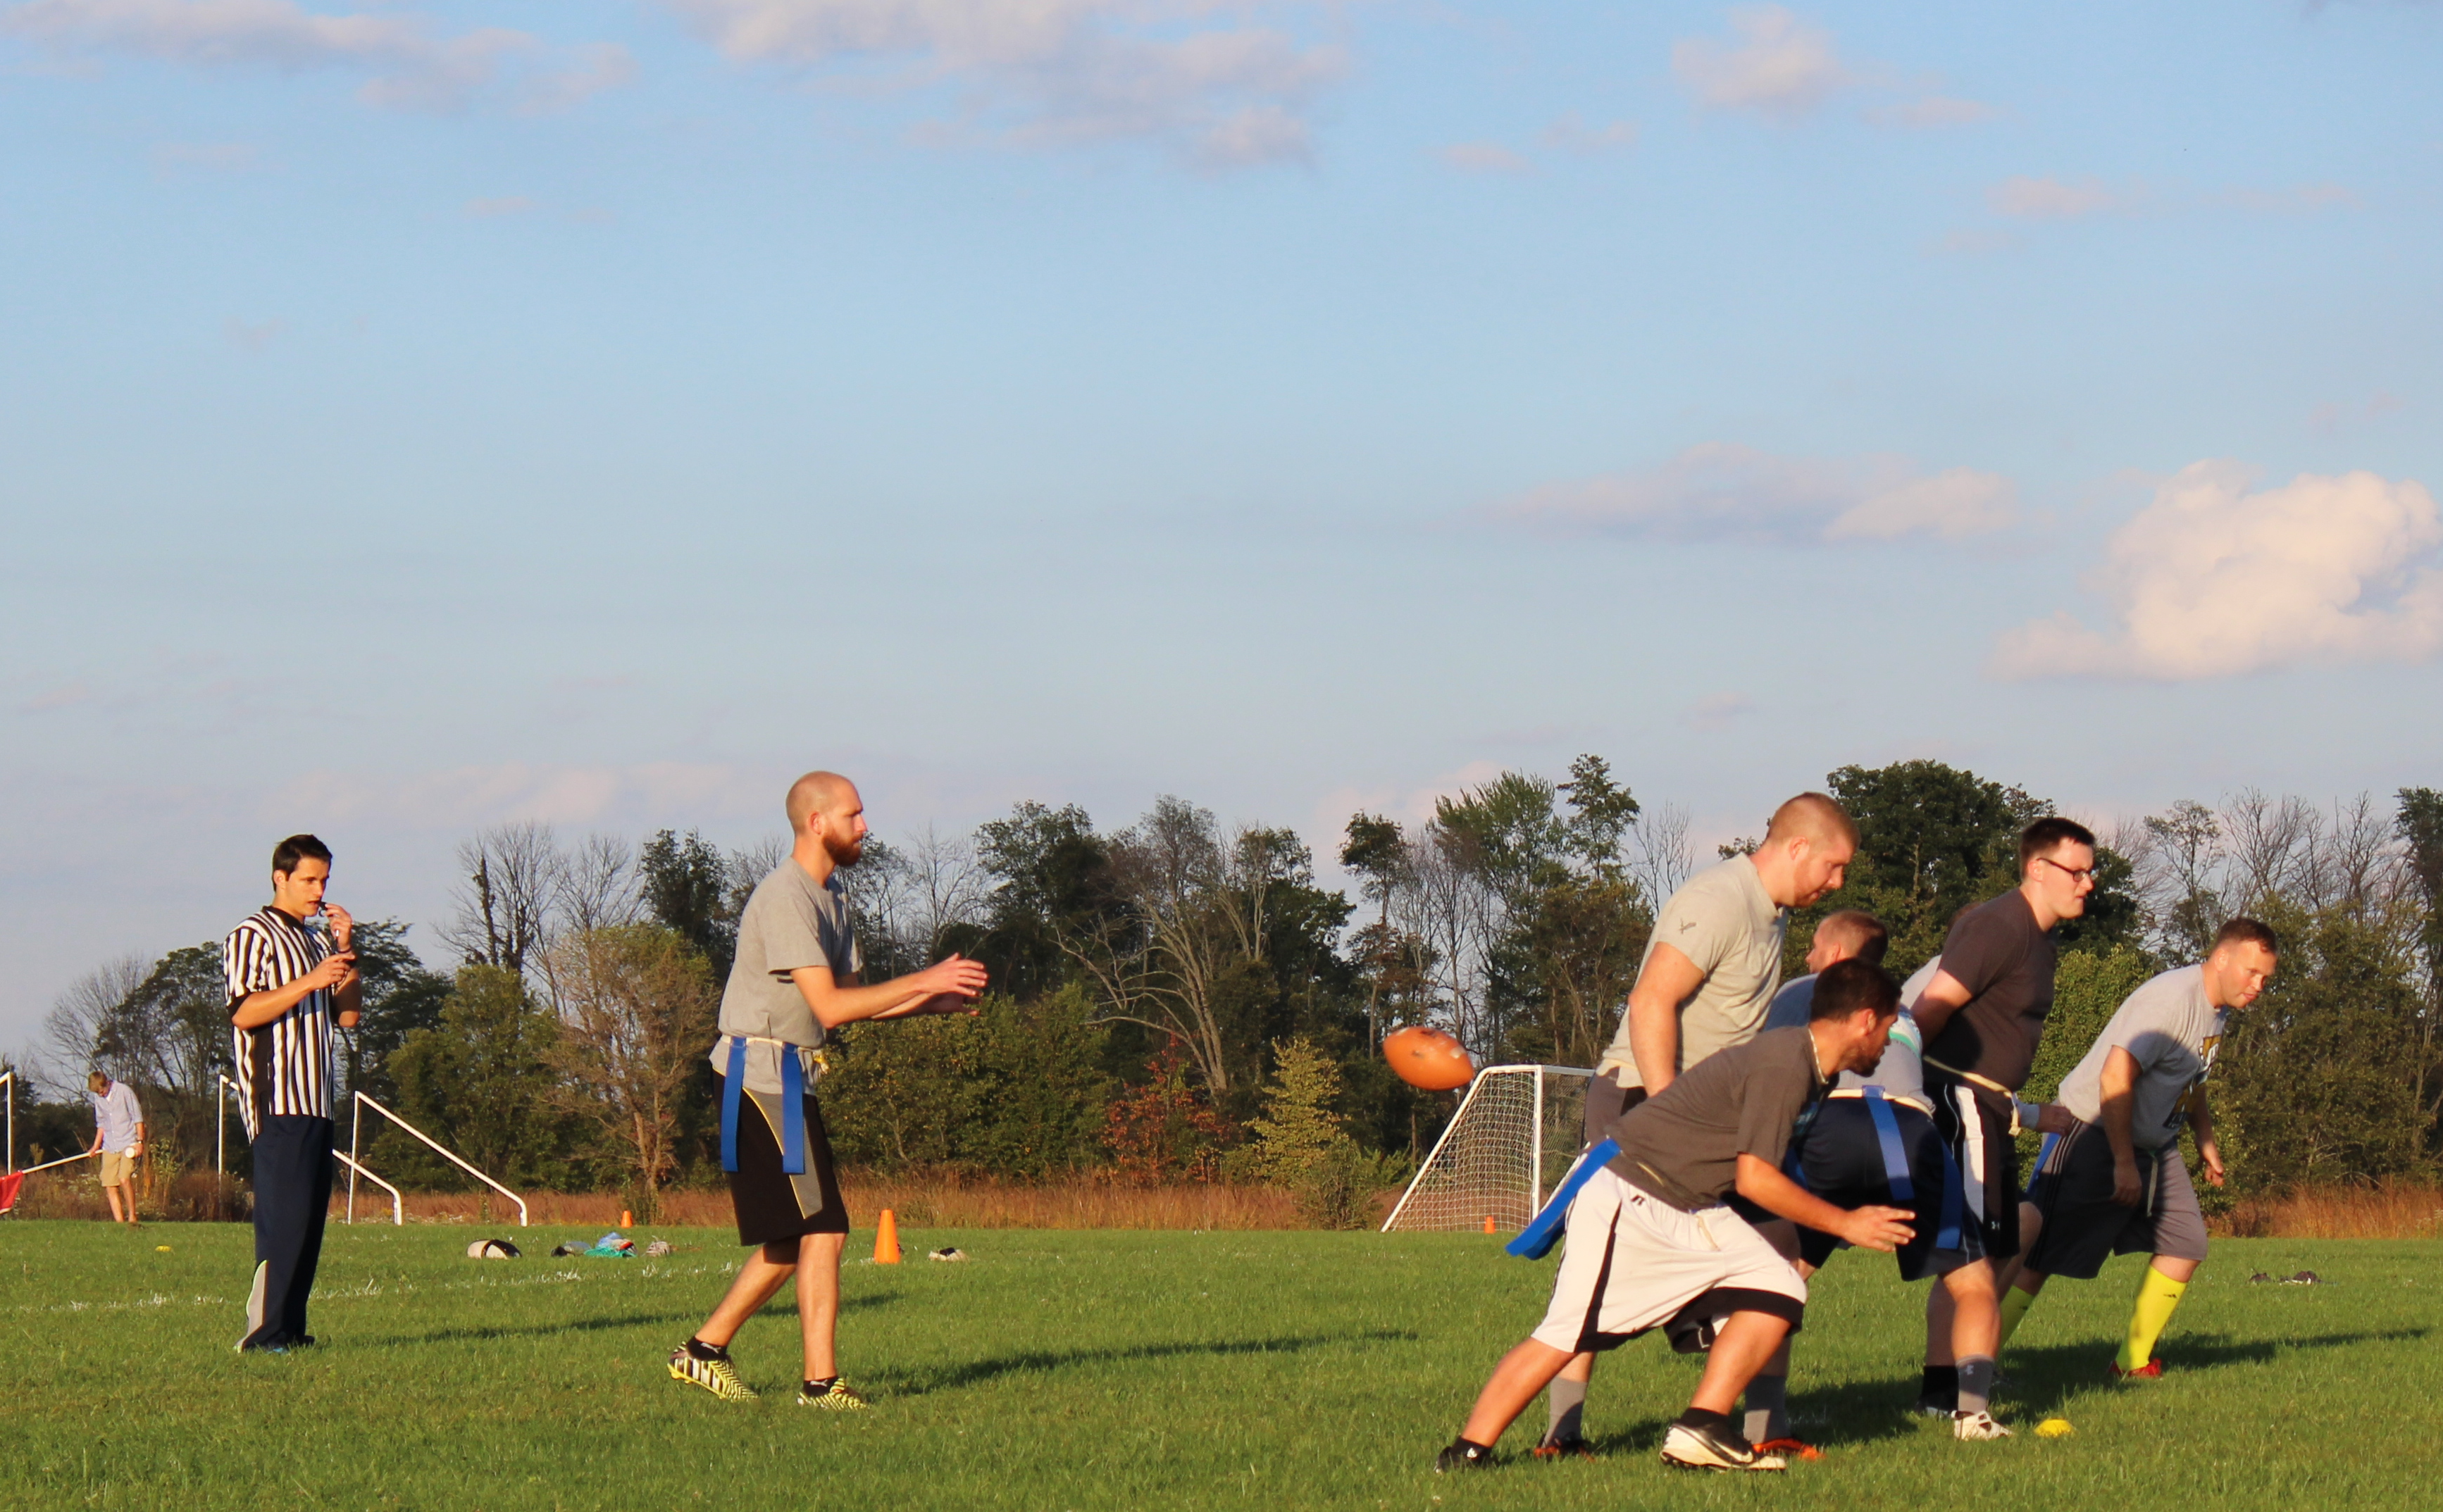 Students play a game of intramural football